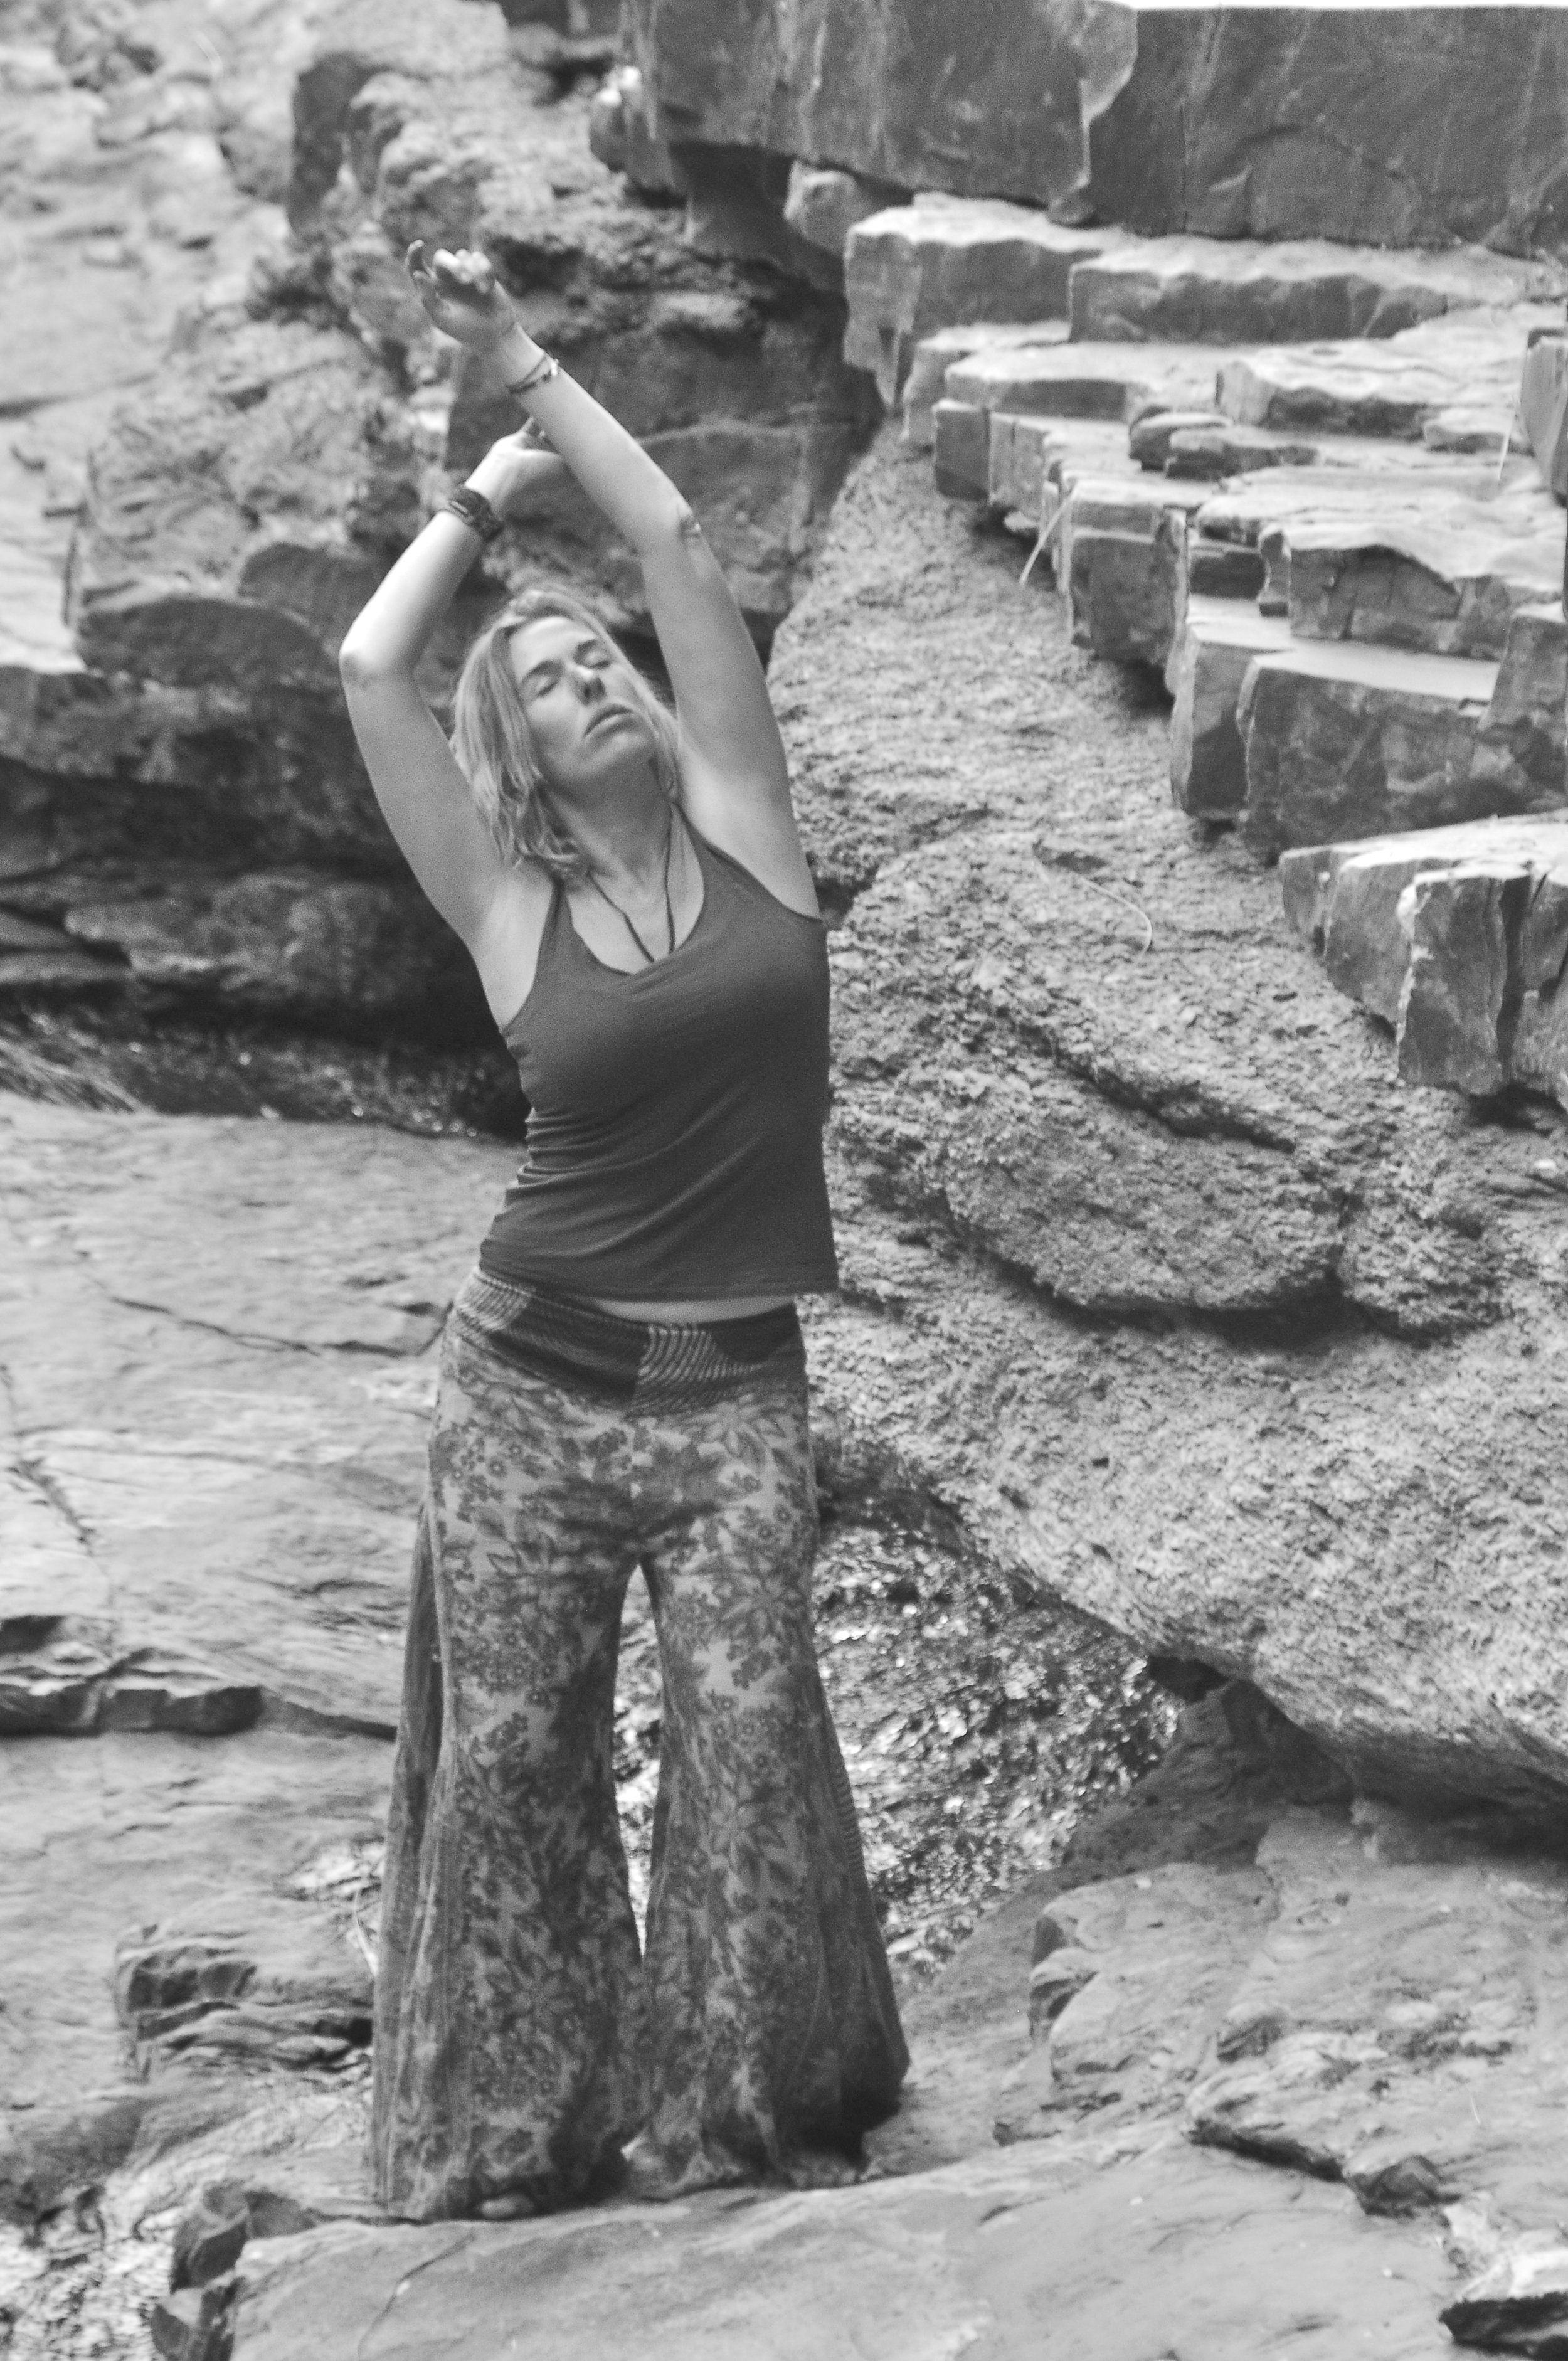 Dancing wherever I can - connecting to nature through is so powerful.